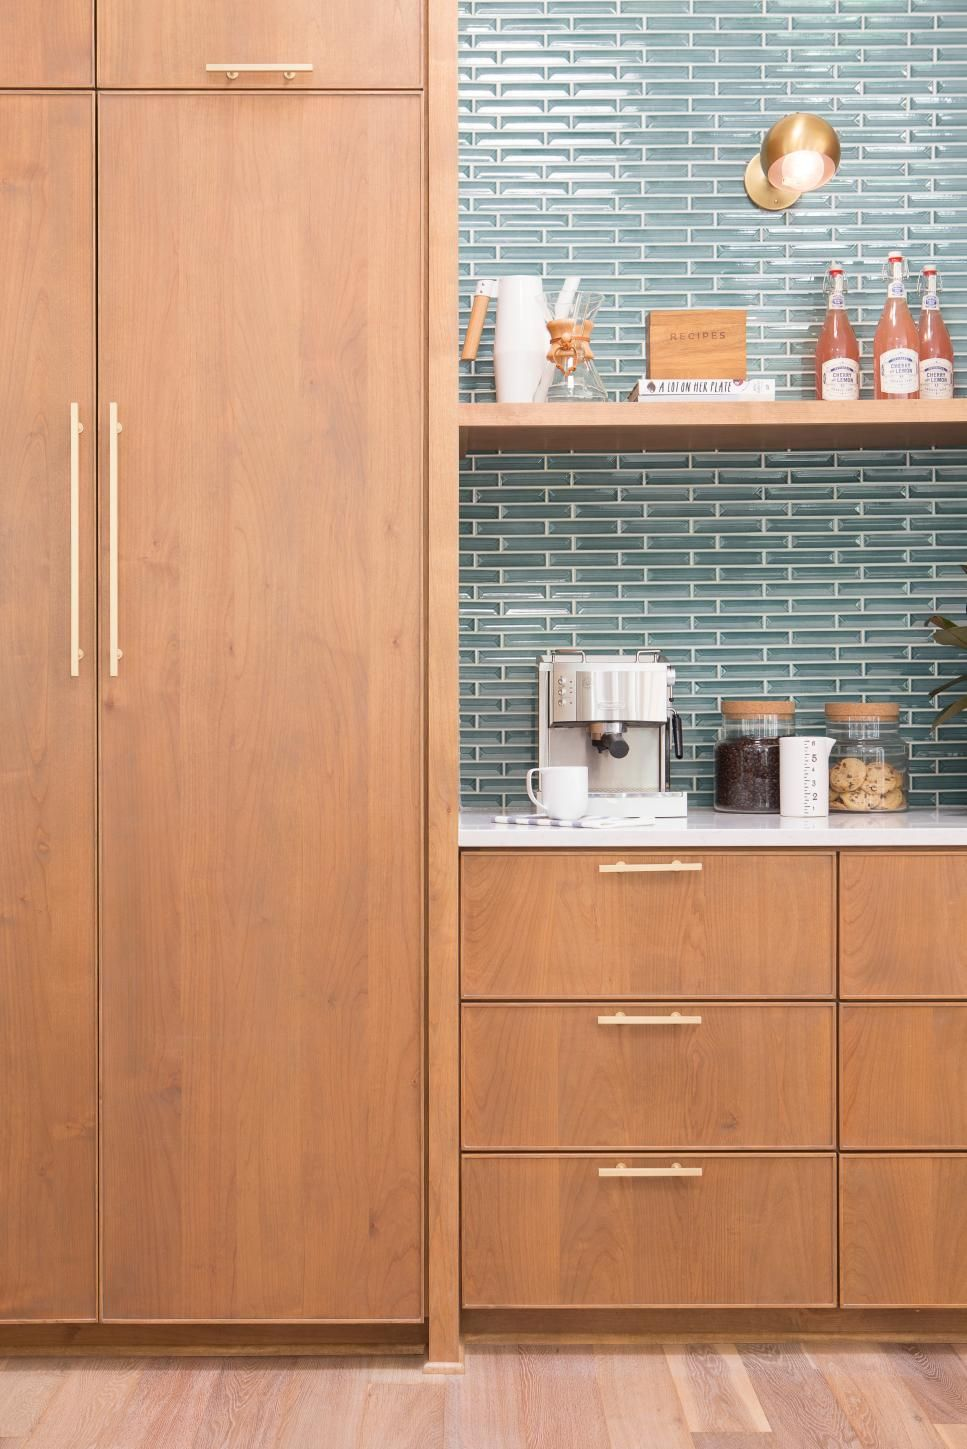 Hgtv shows you how to add style to your kitchen with backsplash ideas in various colors, shapes and materials including ceramic tile,. Neutral Midcentury Modern Kitchen with Blue Tile ...